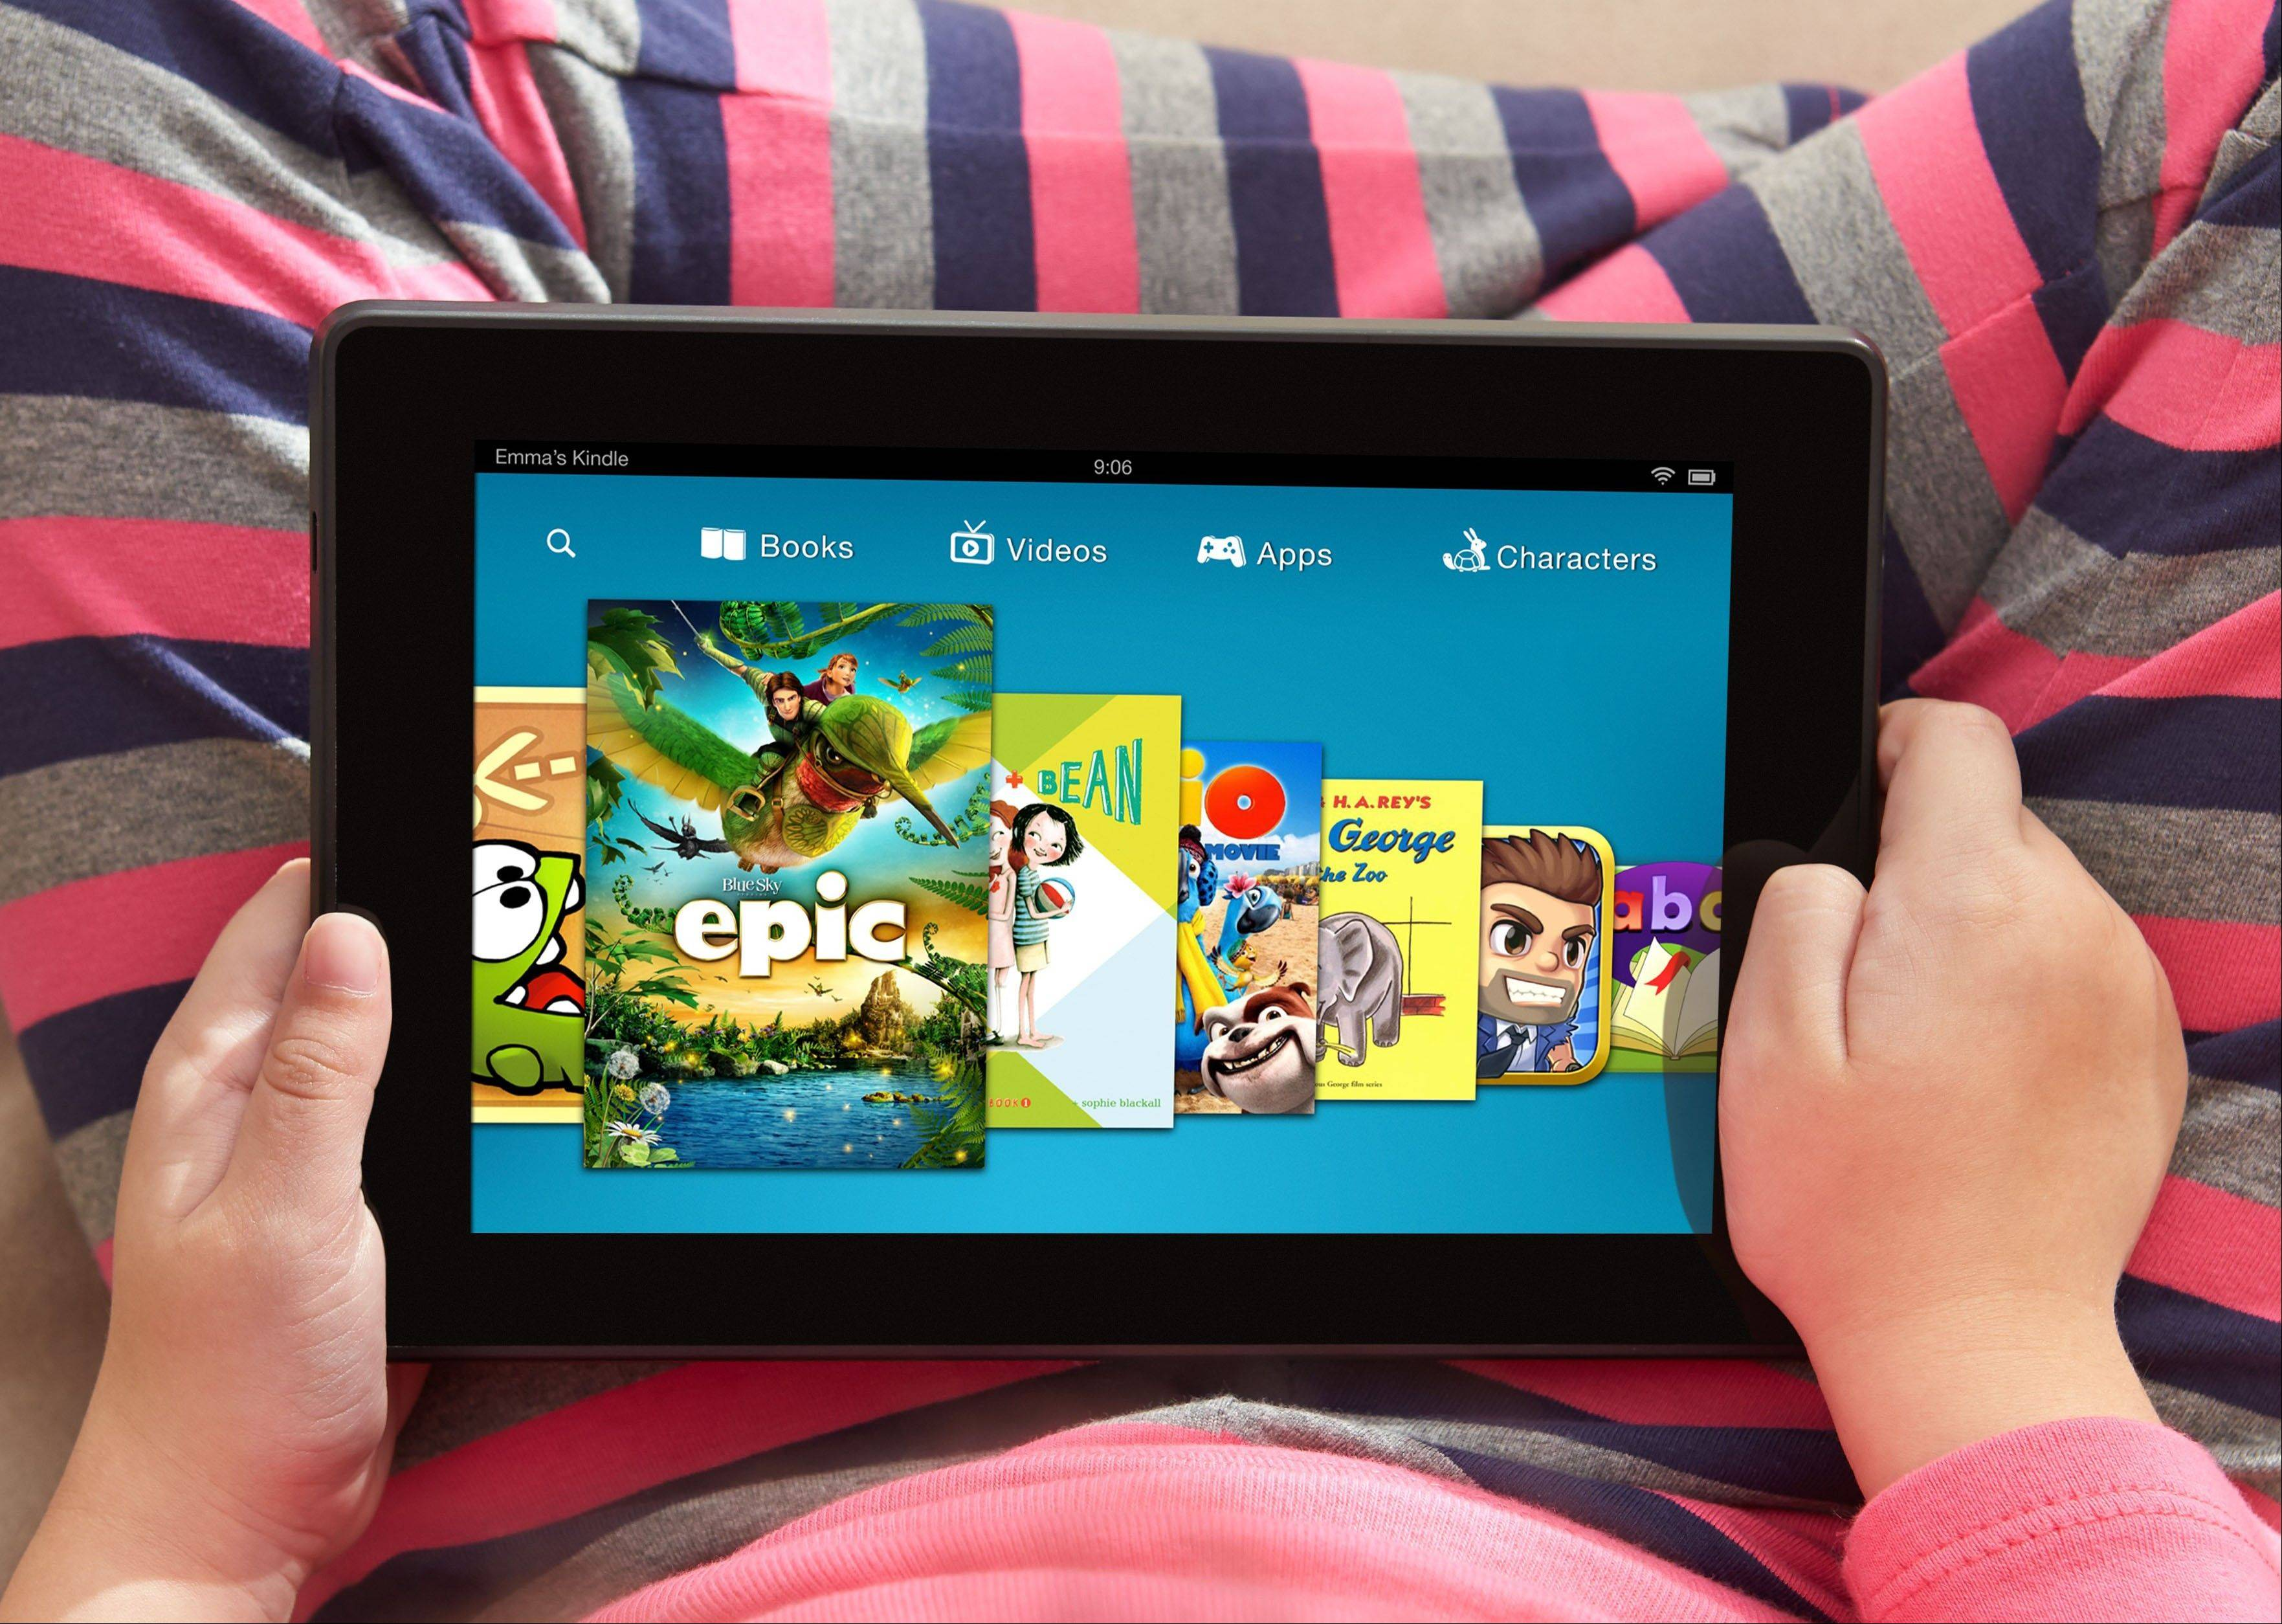 Amazon.com Inc.�s Kindle FreeTime gives parents an easy way to block grown-up content. With FreeTime, kids get thousands of kid-friendly books, games and videos for a monthly fee.